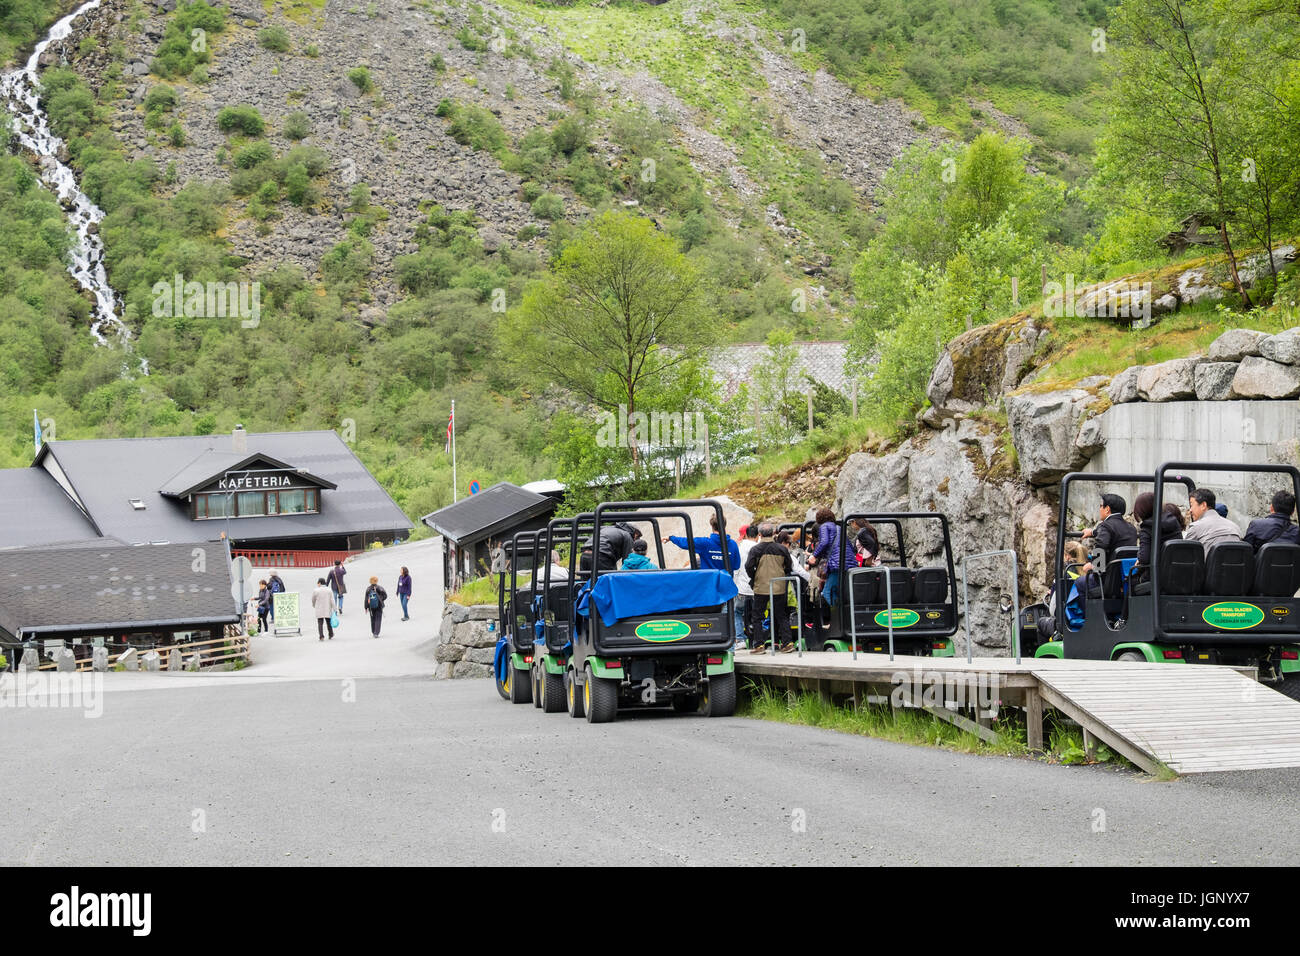 Troll cars transport vehicles for taking tourists to Briksdalsbreen or Briksdal glacier in Briksdalen or Briks valley - Stock Image